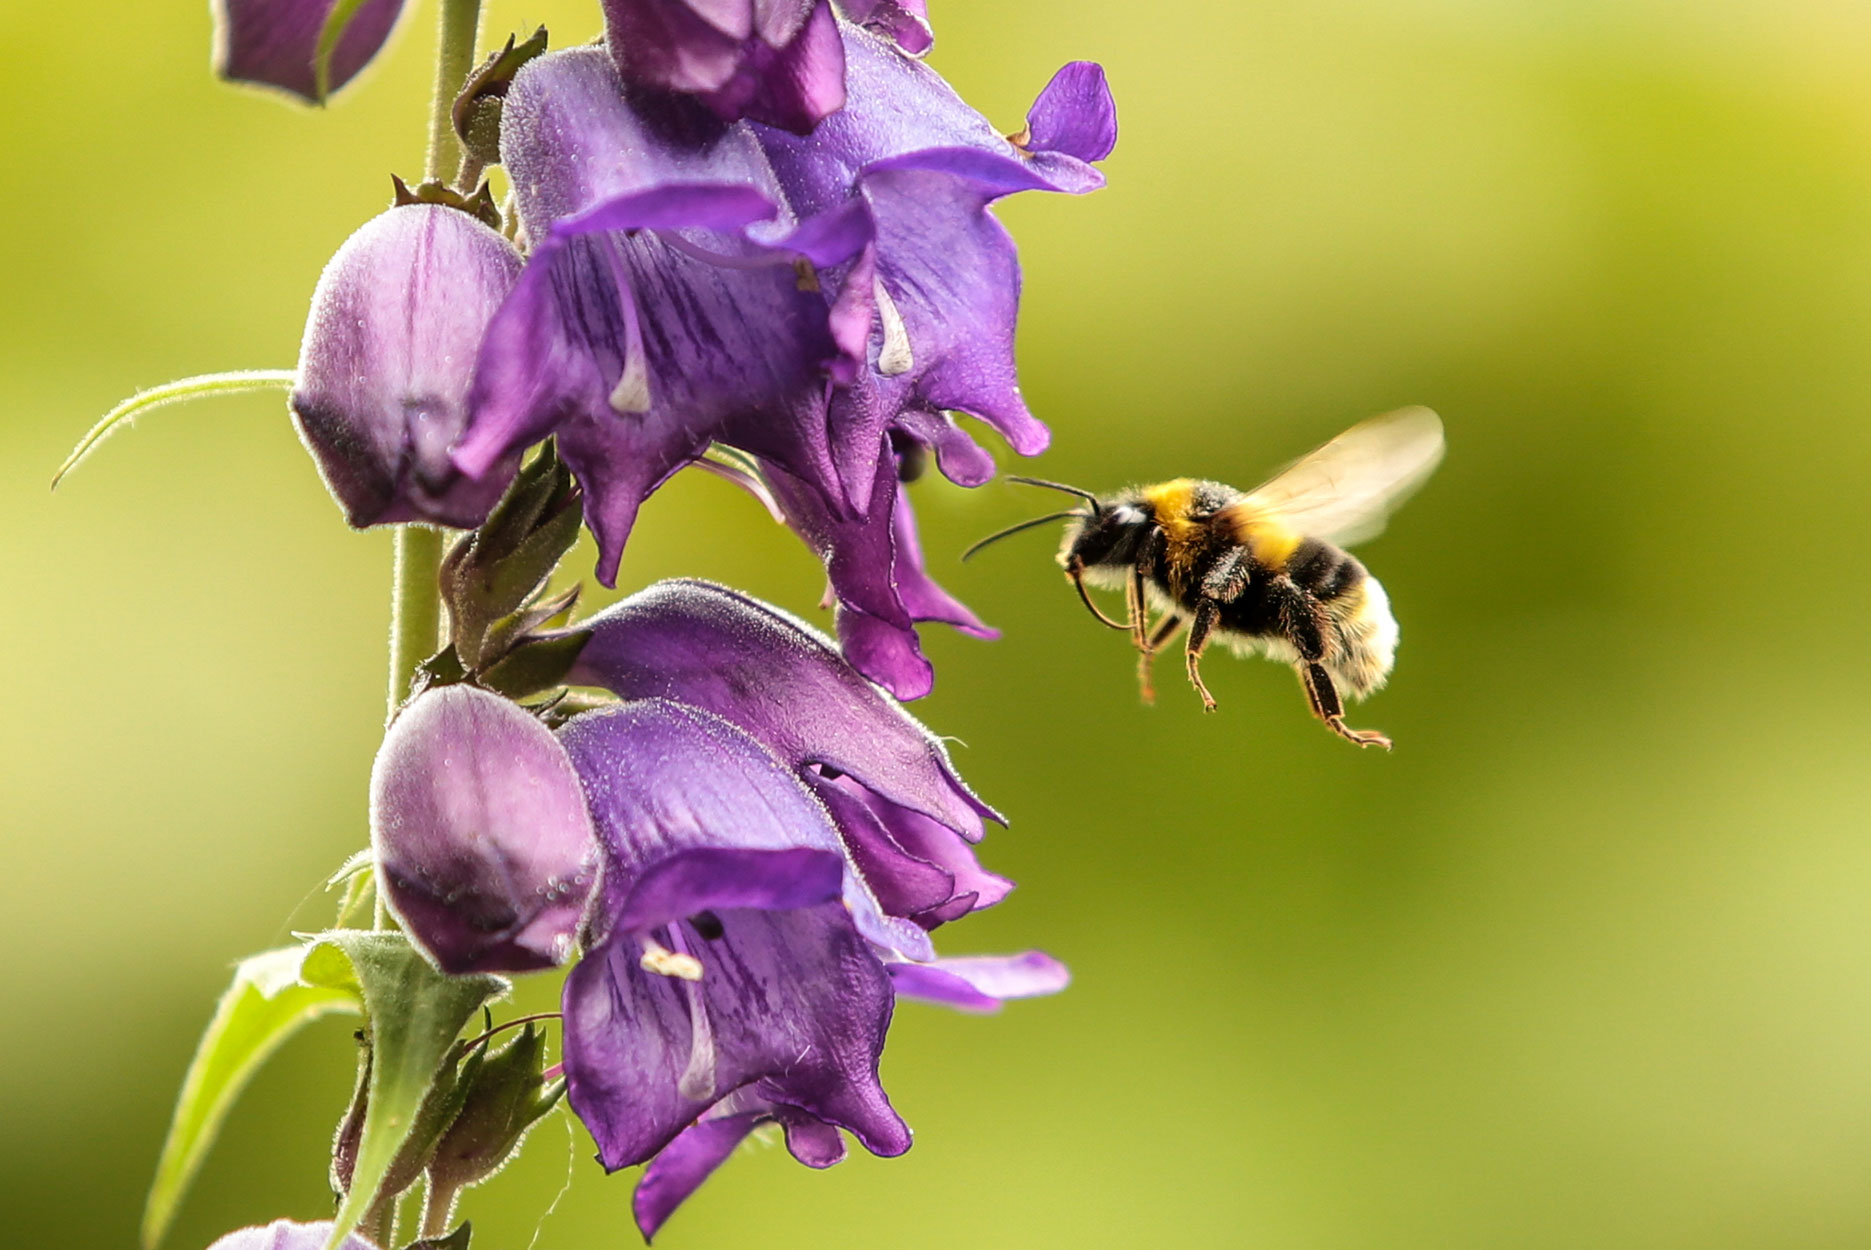 A bumblebee prepares to pollenate a flower